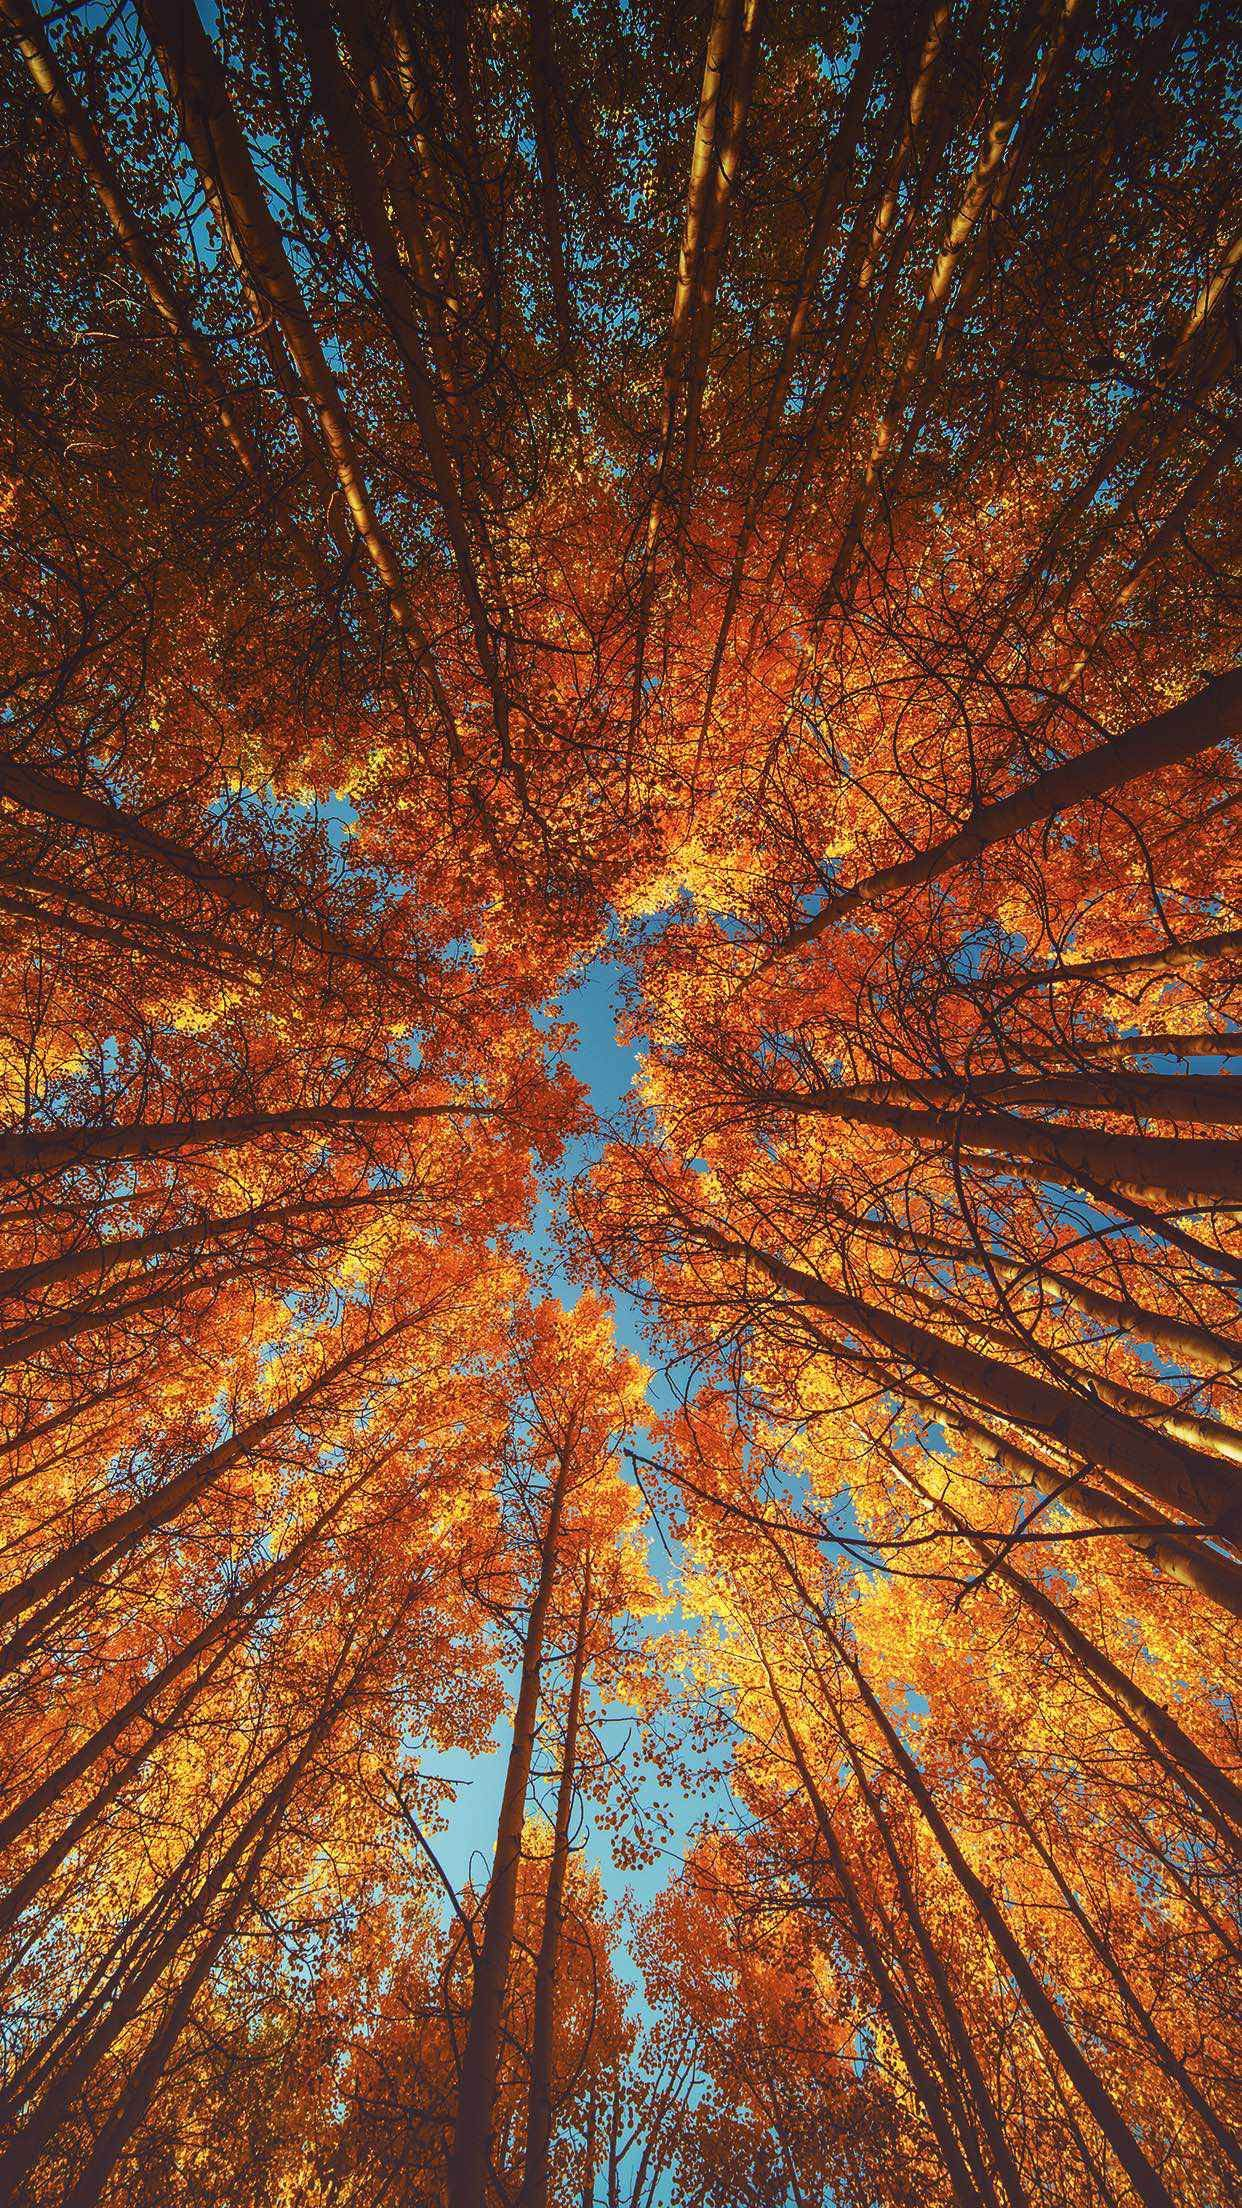 Iphone Xr Wallpaper Autumn in 2020 Wallpaper iphone